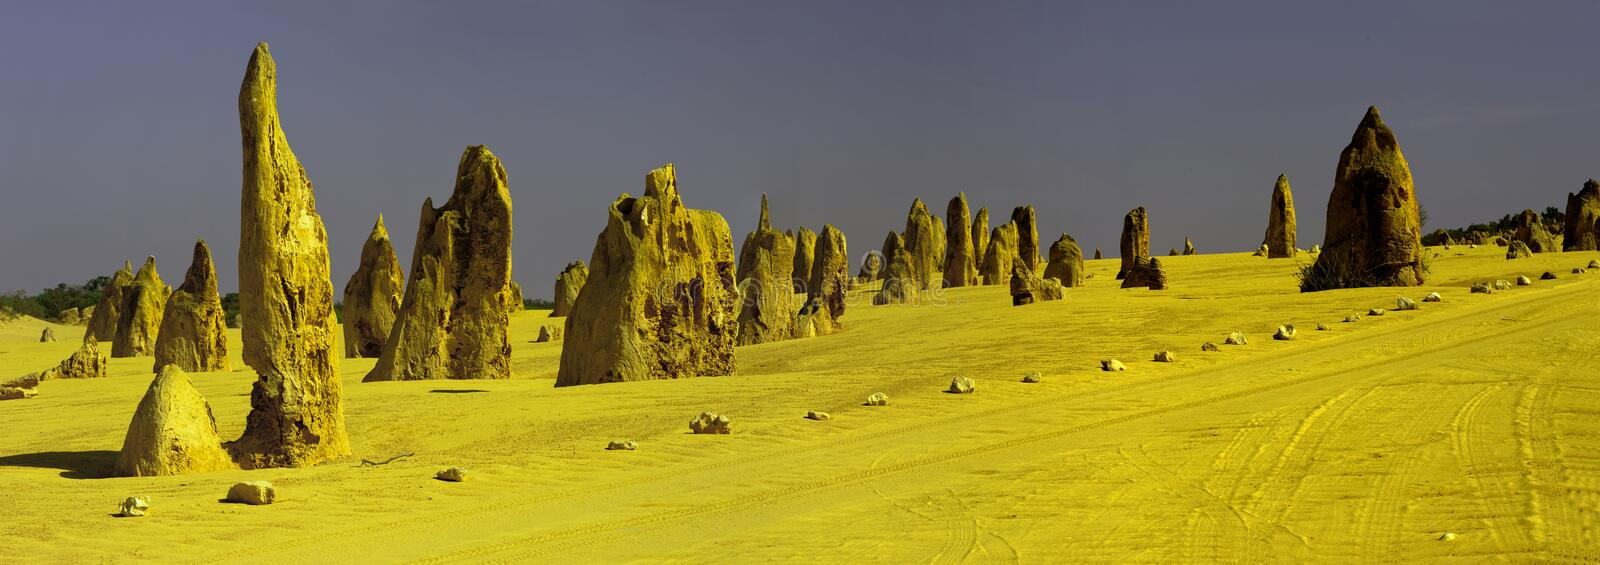 The Pinnacles. Are limestone formations contained within Nambung National Park, near the town of Cervantes, Western Australia.  remained unknown to most stock image